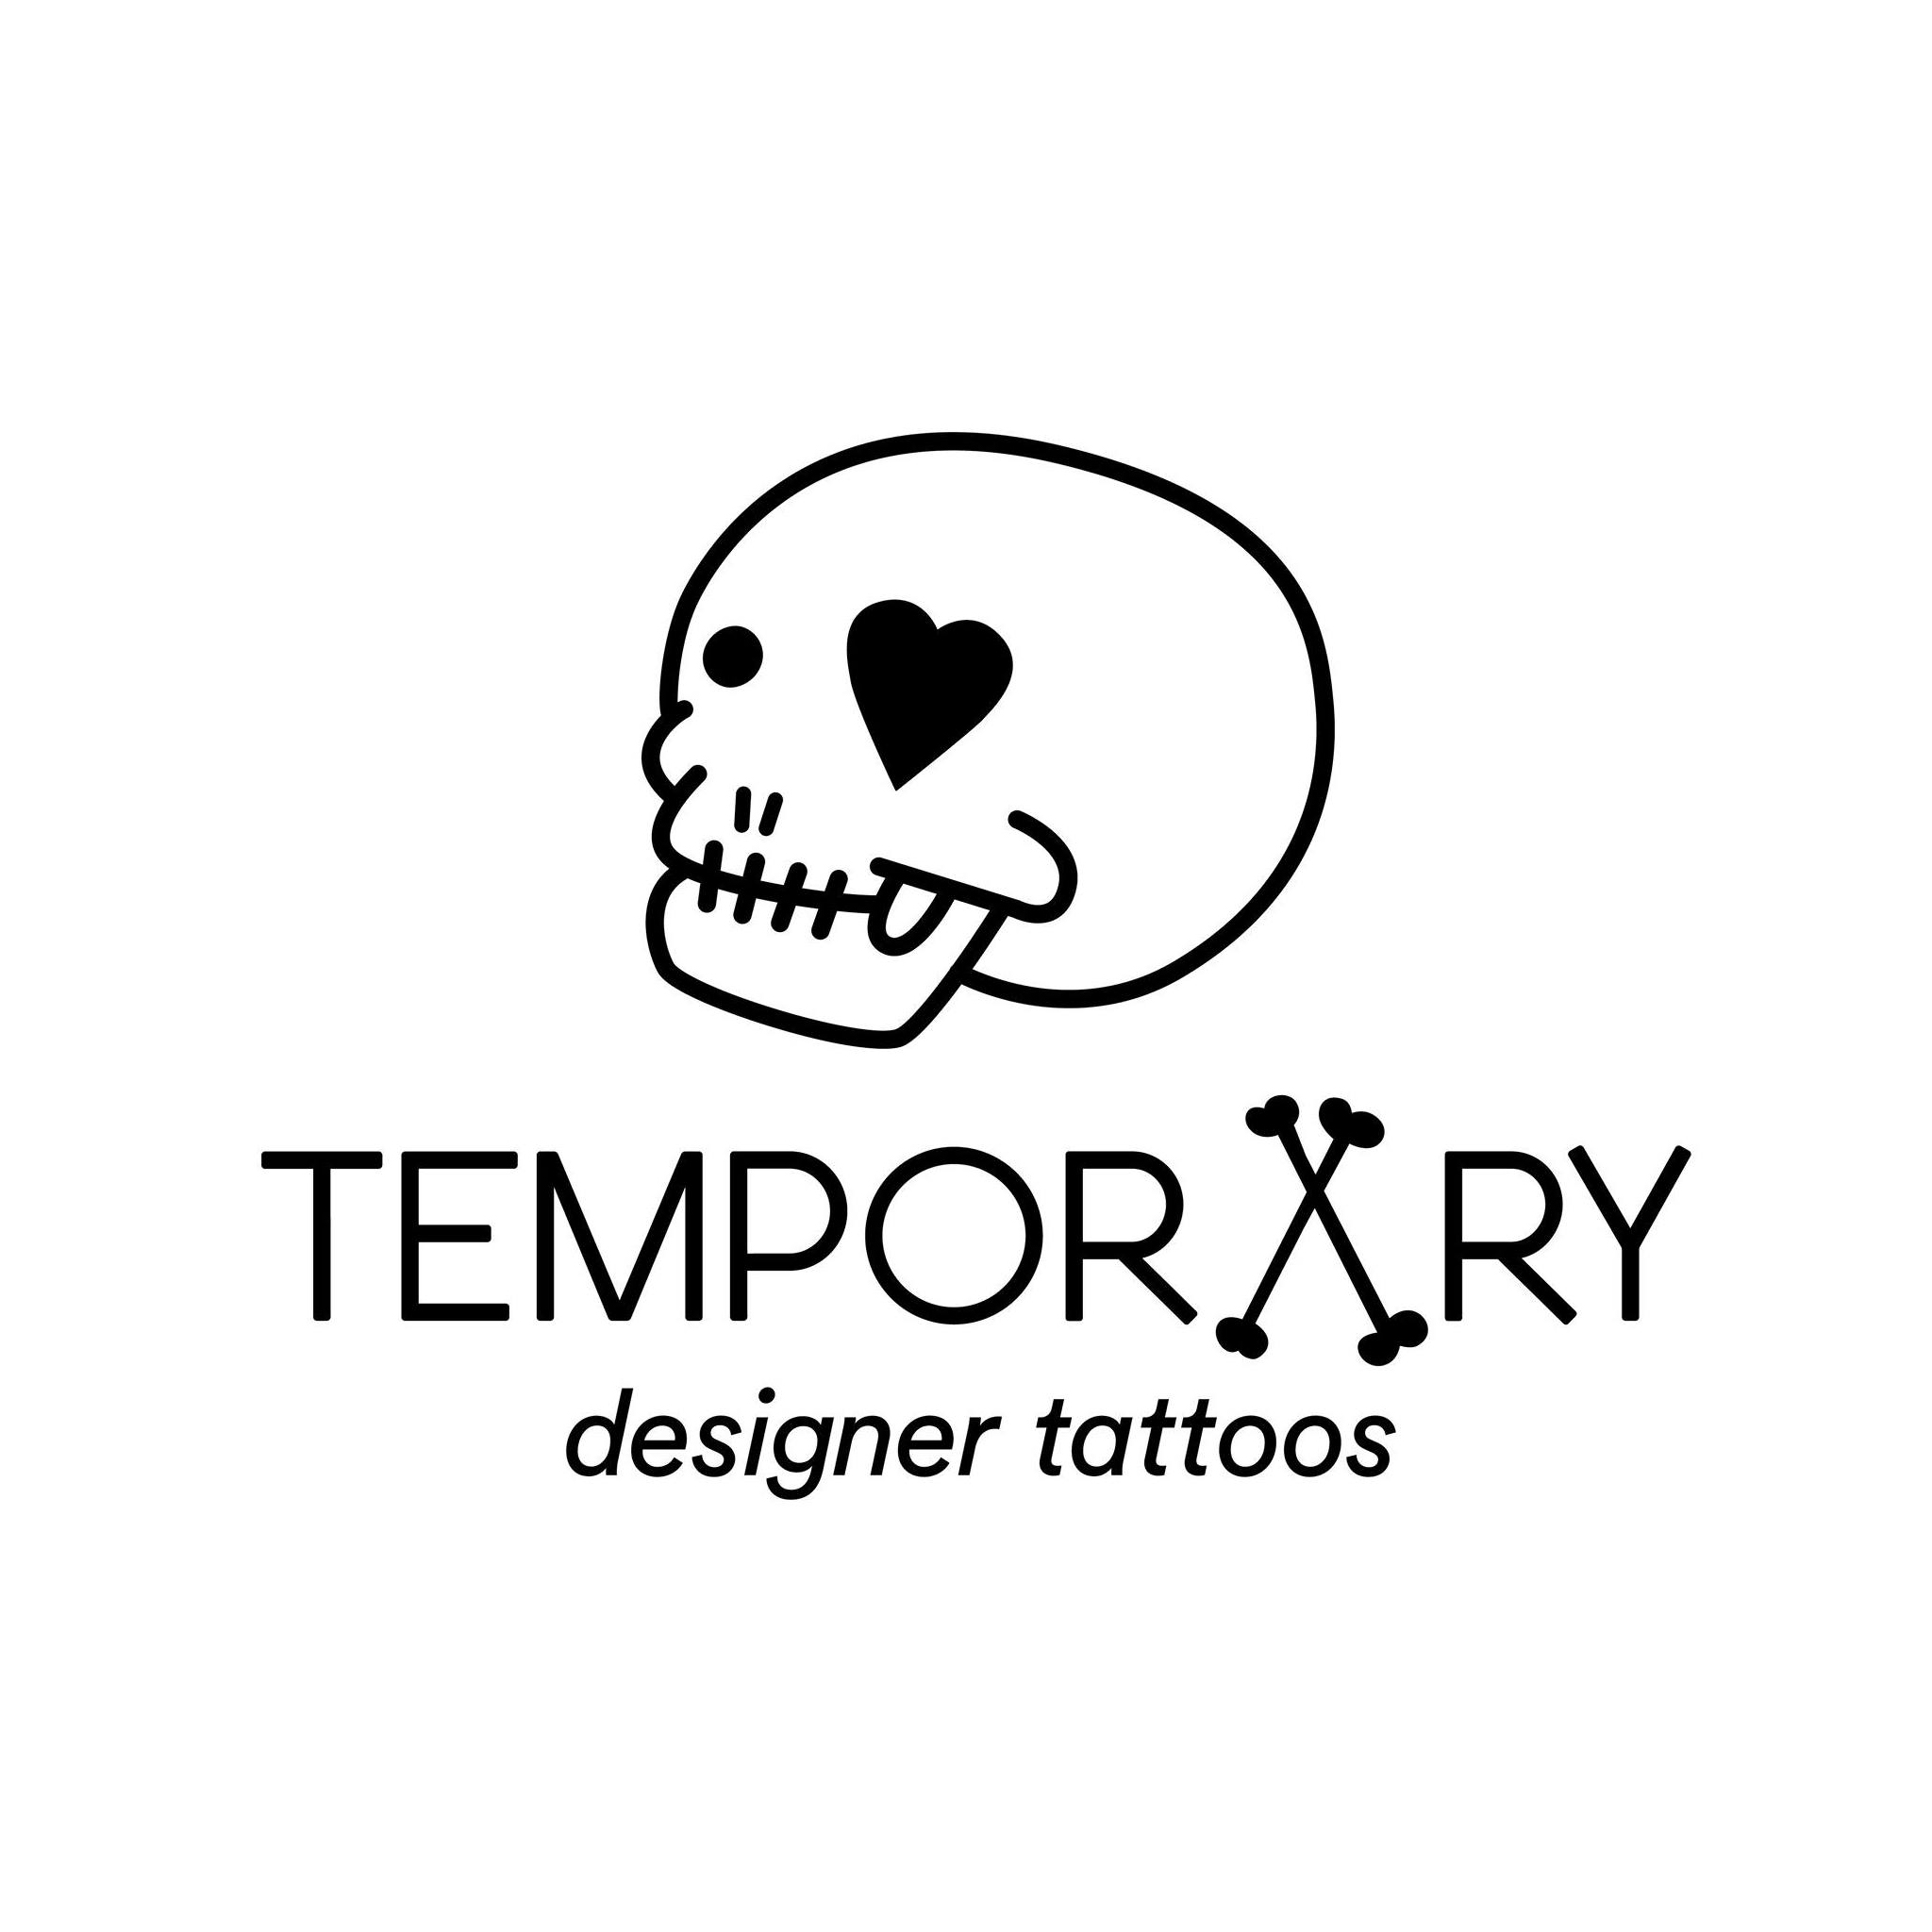 Temporary Designer Tattoos